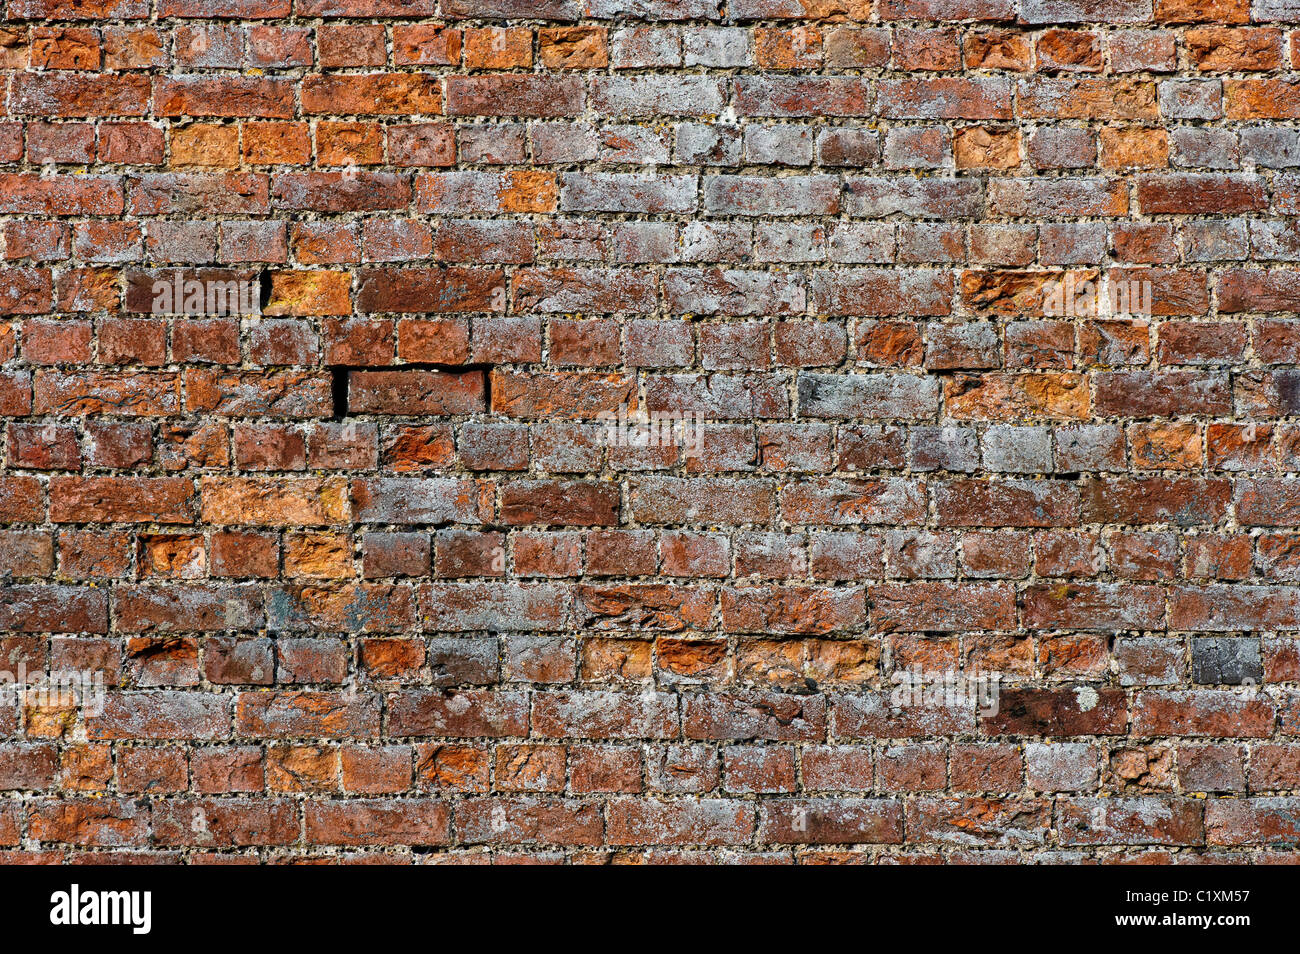 Old garden brick wall - Stock Image